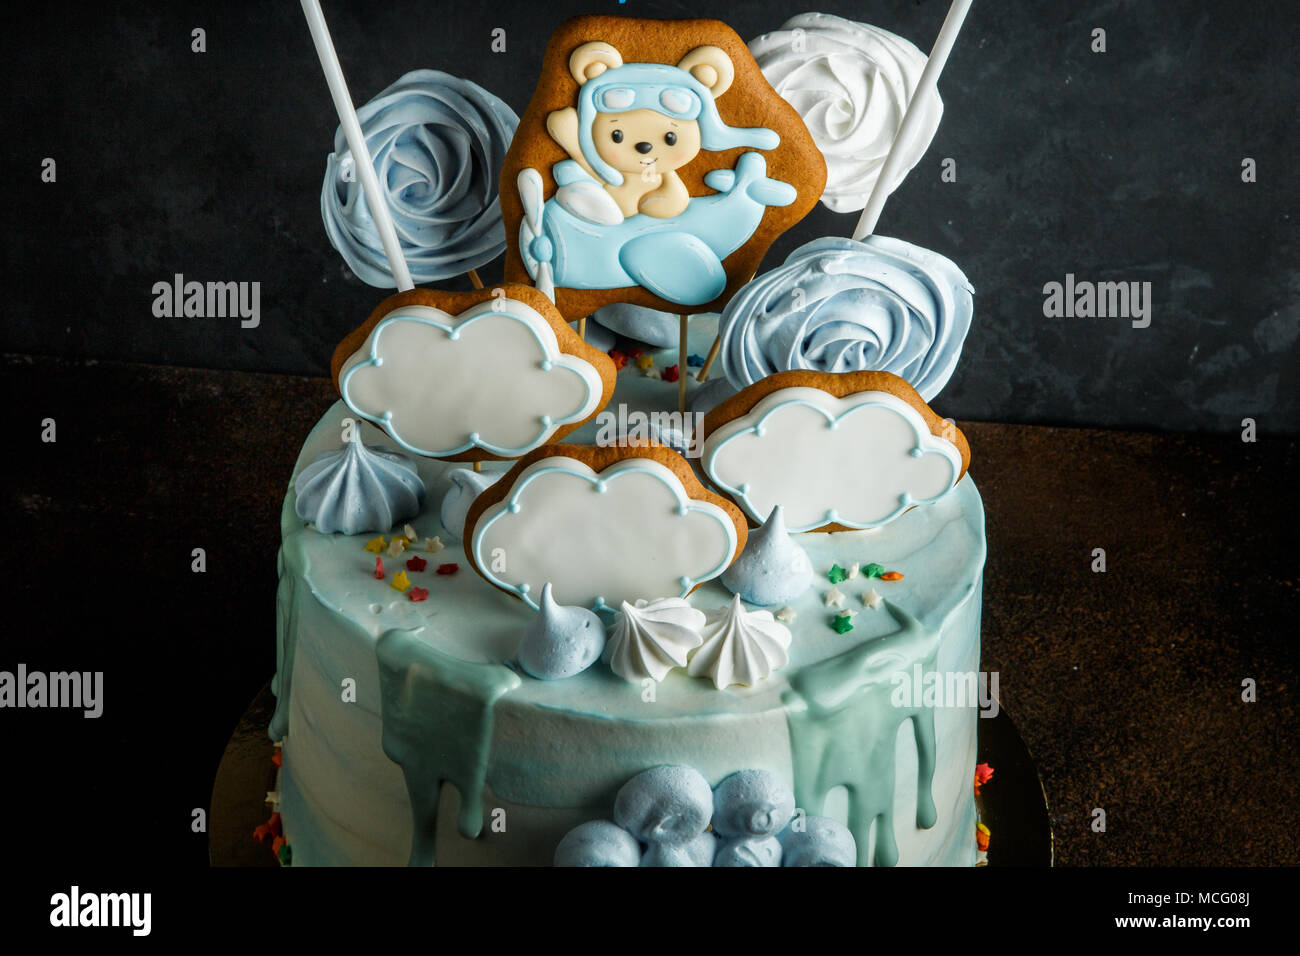 Swell Closeup Birthday Cake Decorated With Gingerbread Bizet And Zephyr Funny Birthday Cards Online Hetedamsfinfo